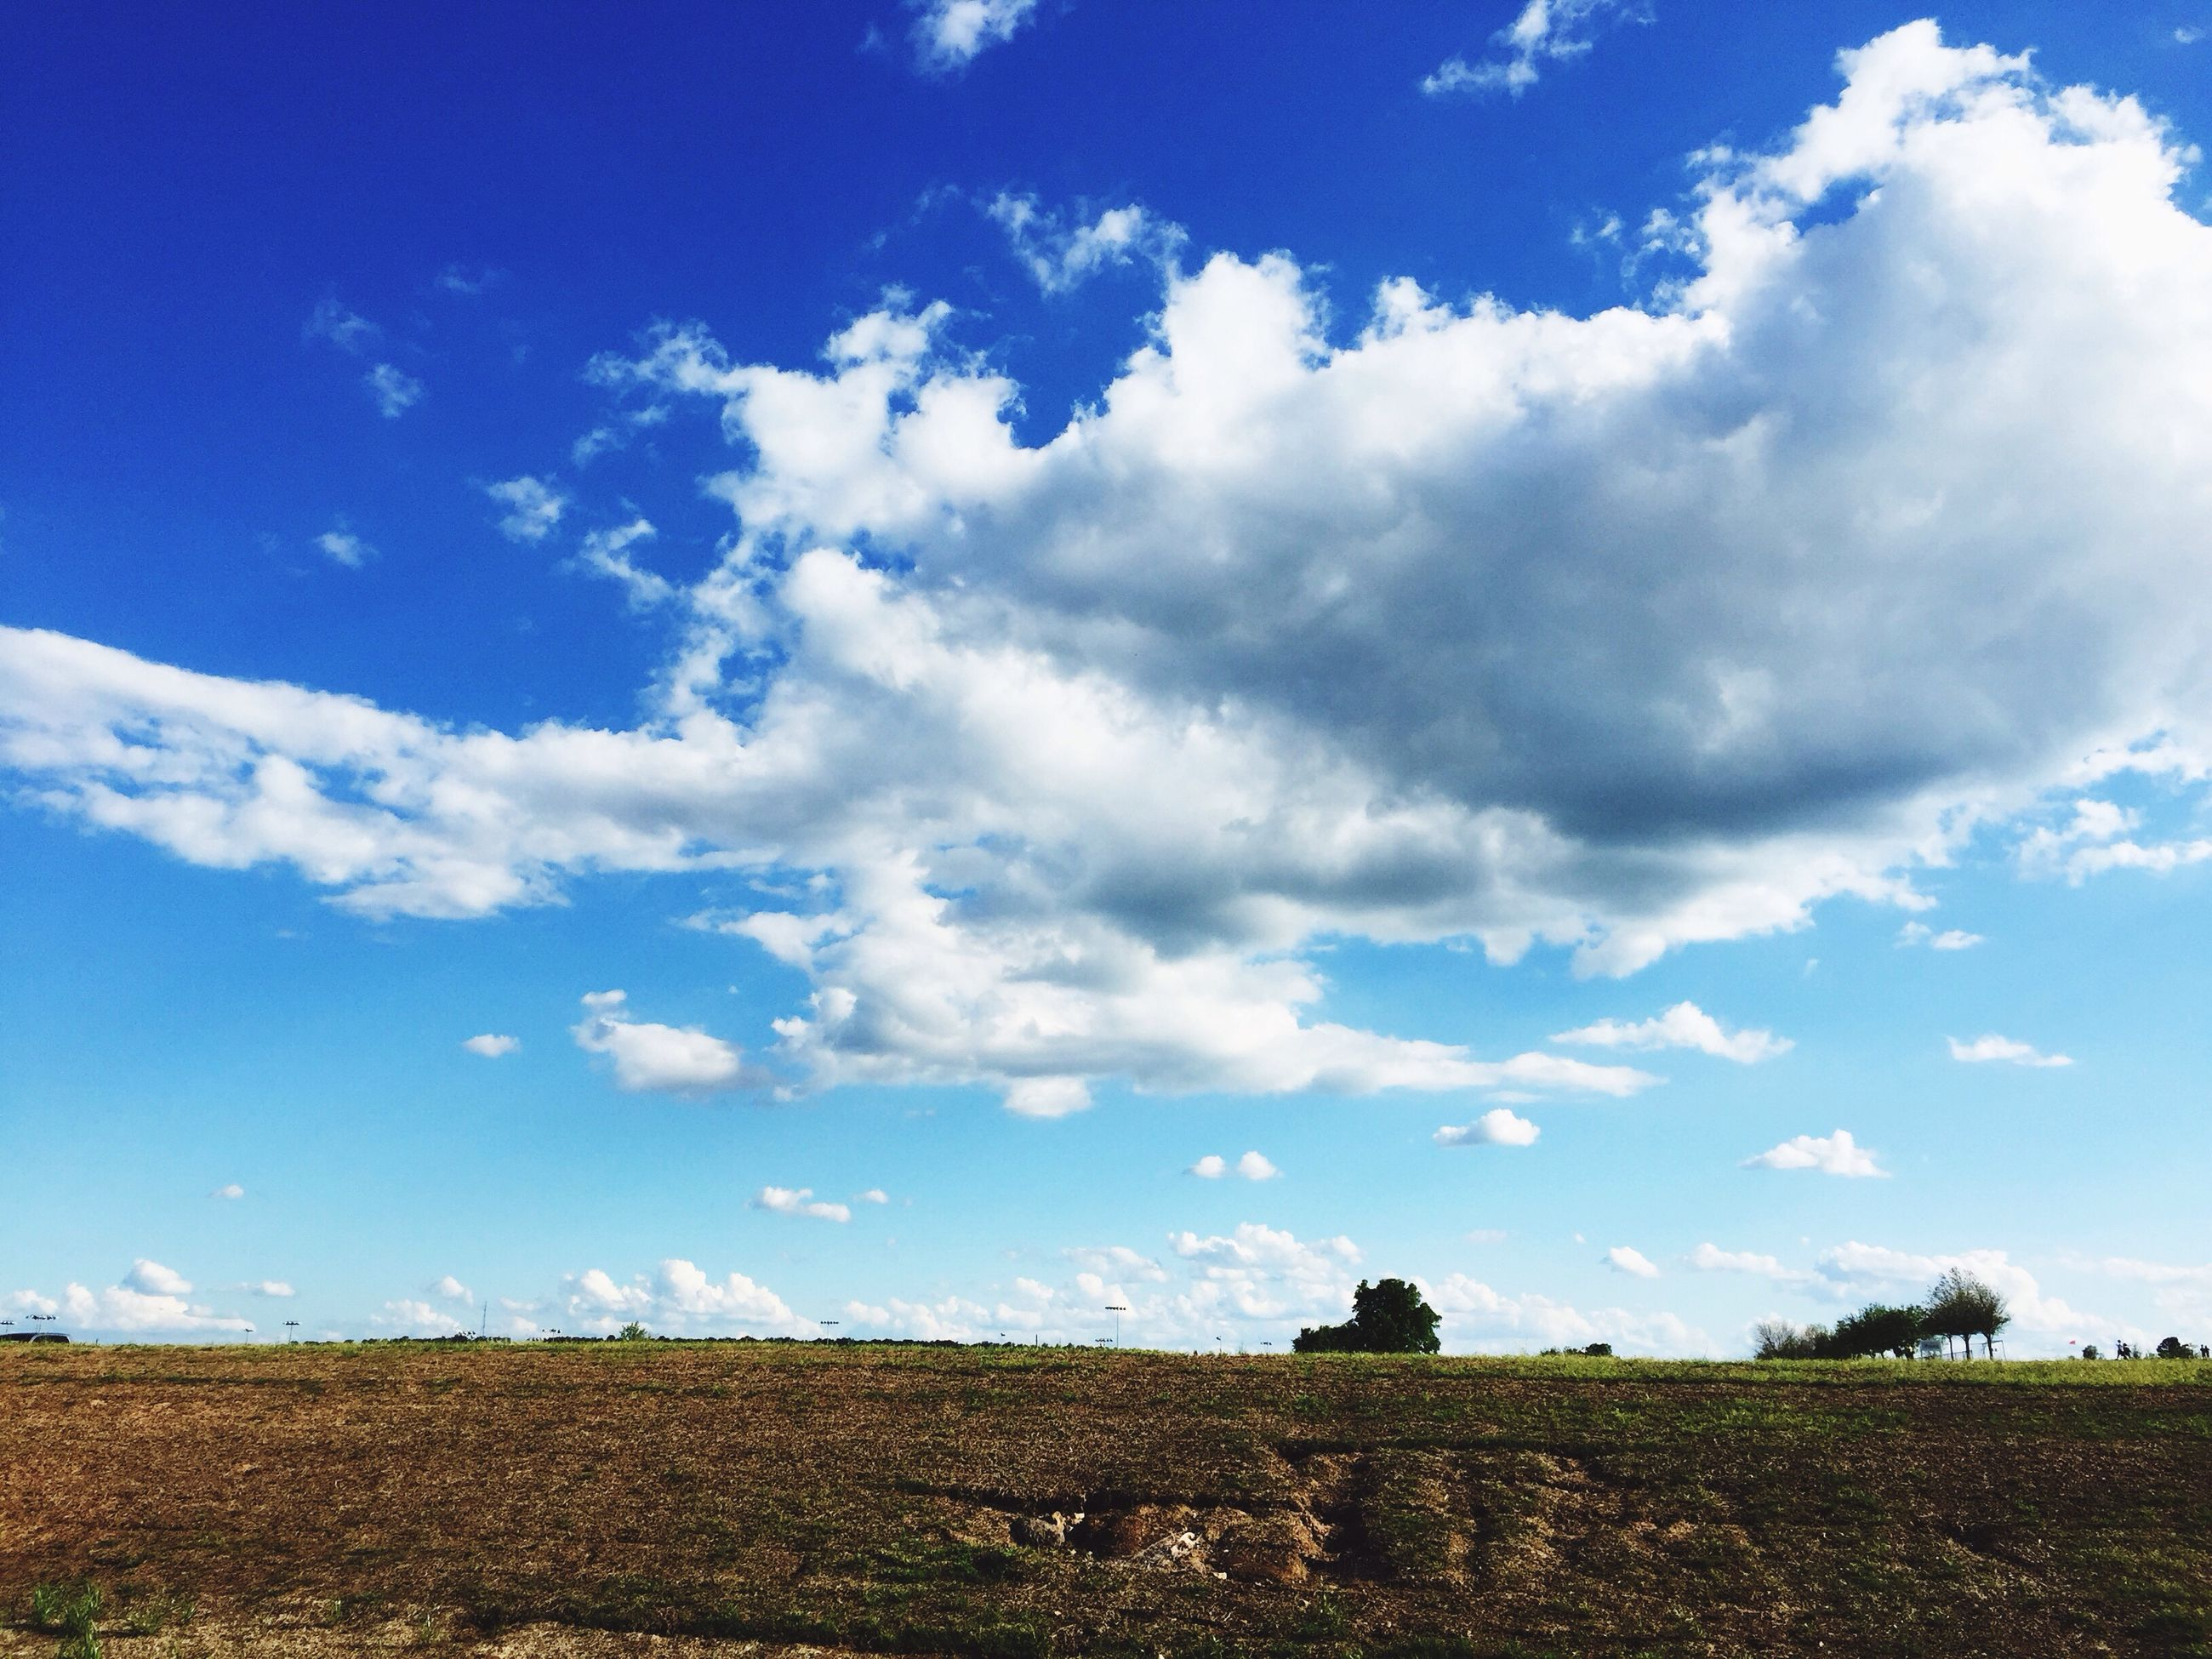 sky, field, landscape, tranquil scene, tranquility, blue, cloud - sky, rural scene, agriculture, beauty in nature, scenics, nature, cloud, growth, horizon over land, grass, farm, plant, day, sunlight